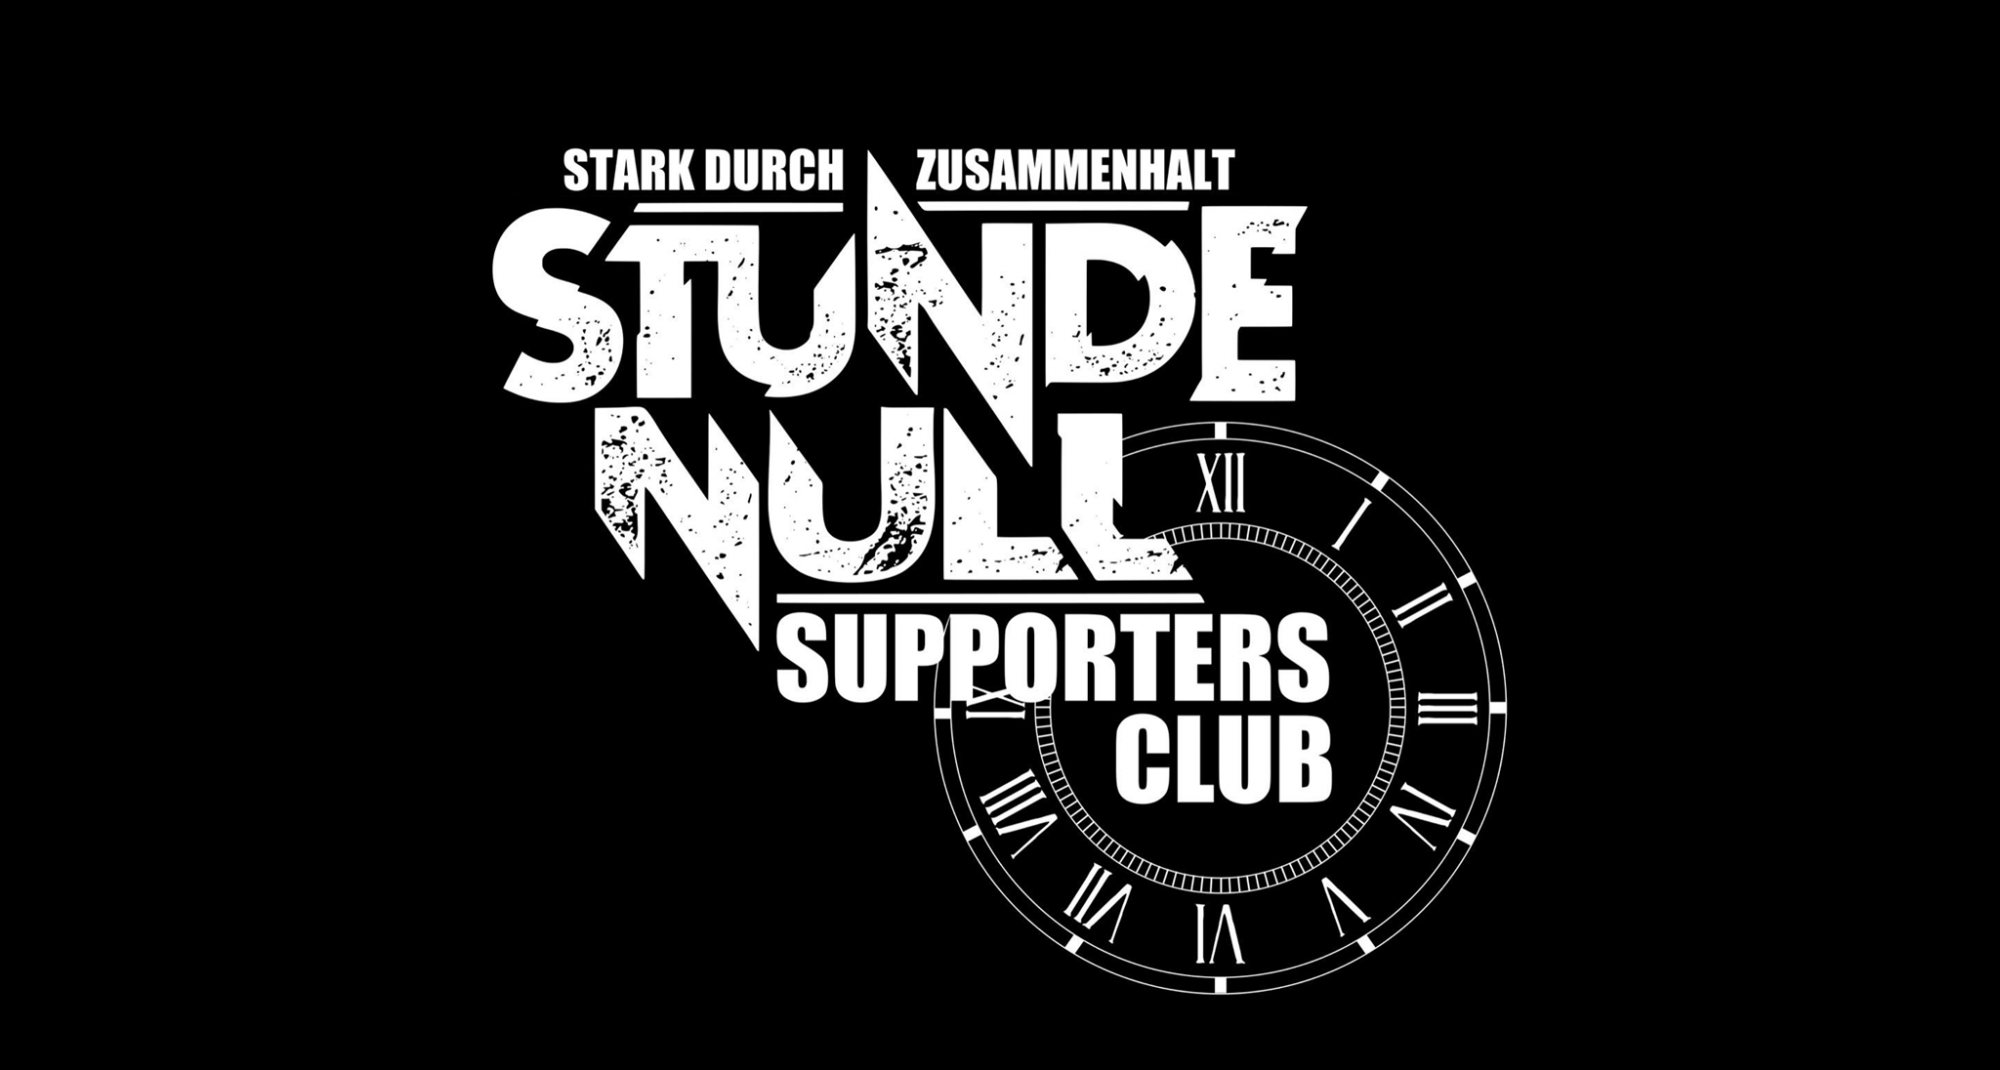 Stunde Null Supporters Club e.V.